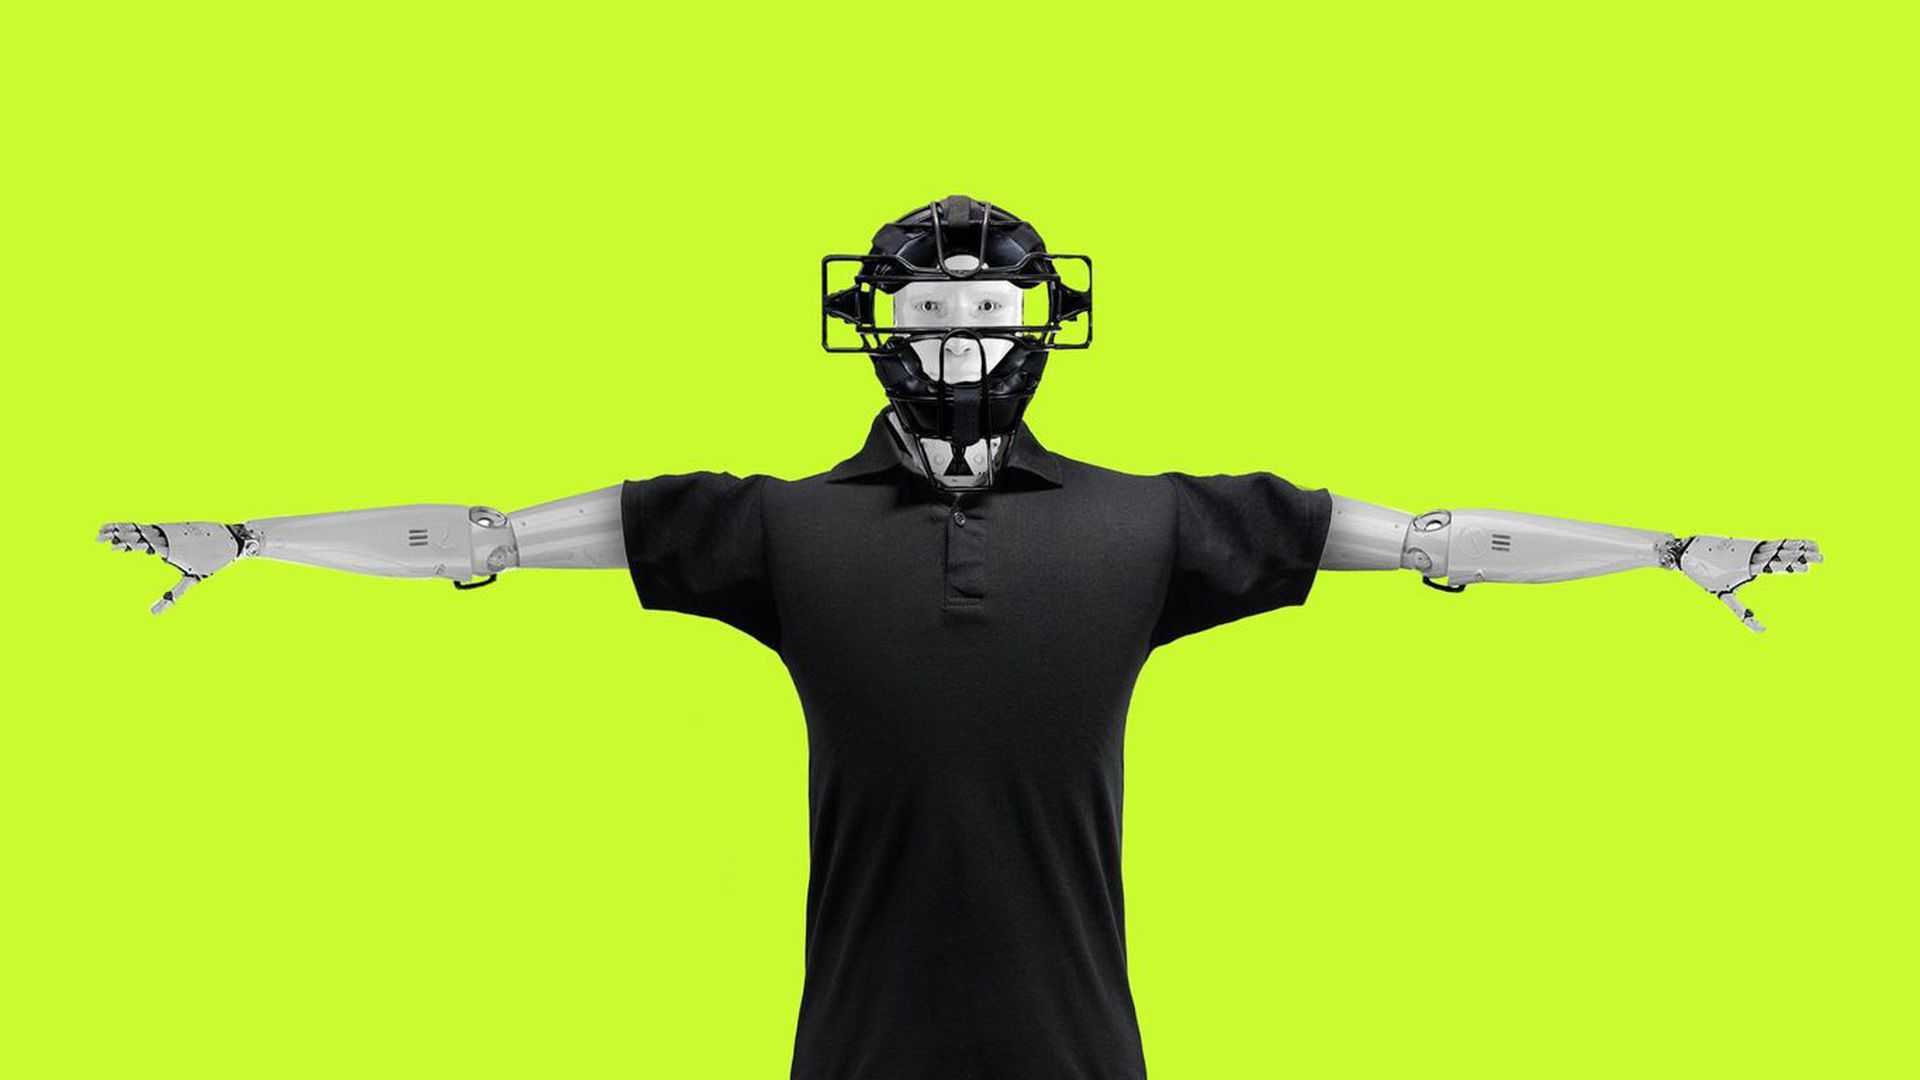 Illustration of a robot dressed up in umpire gear